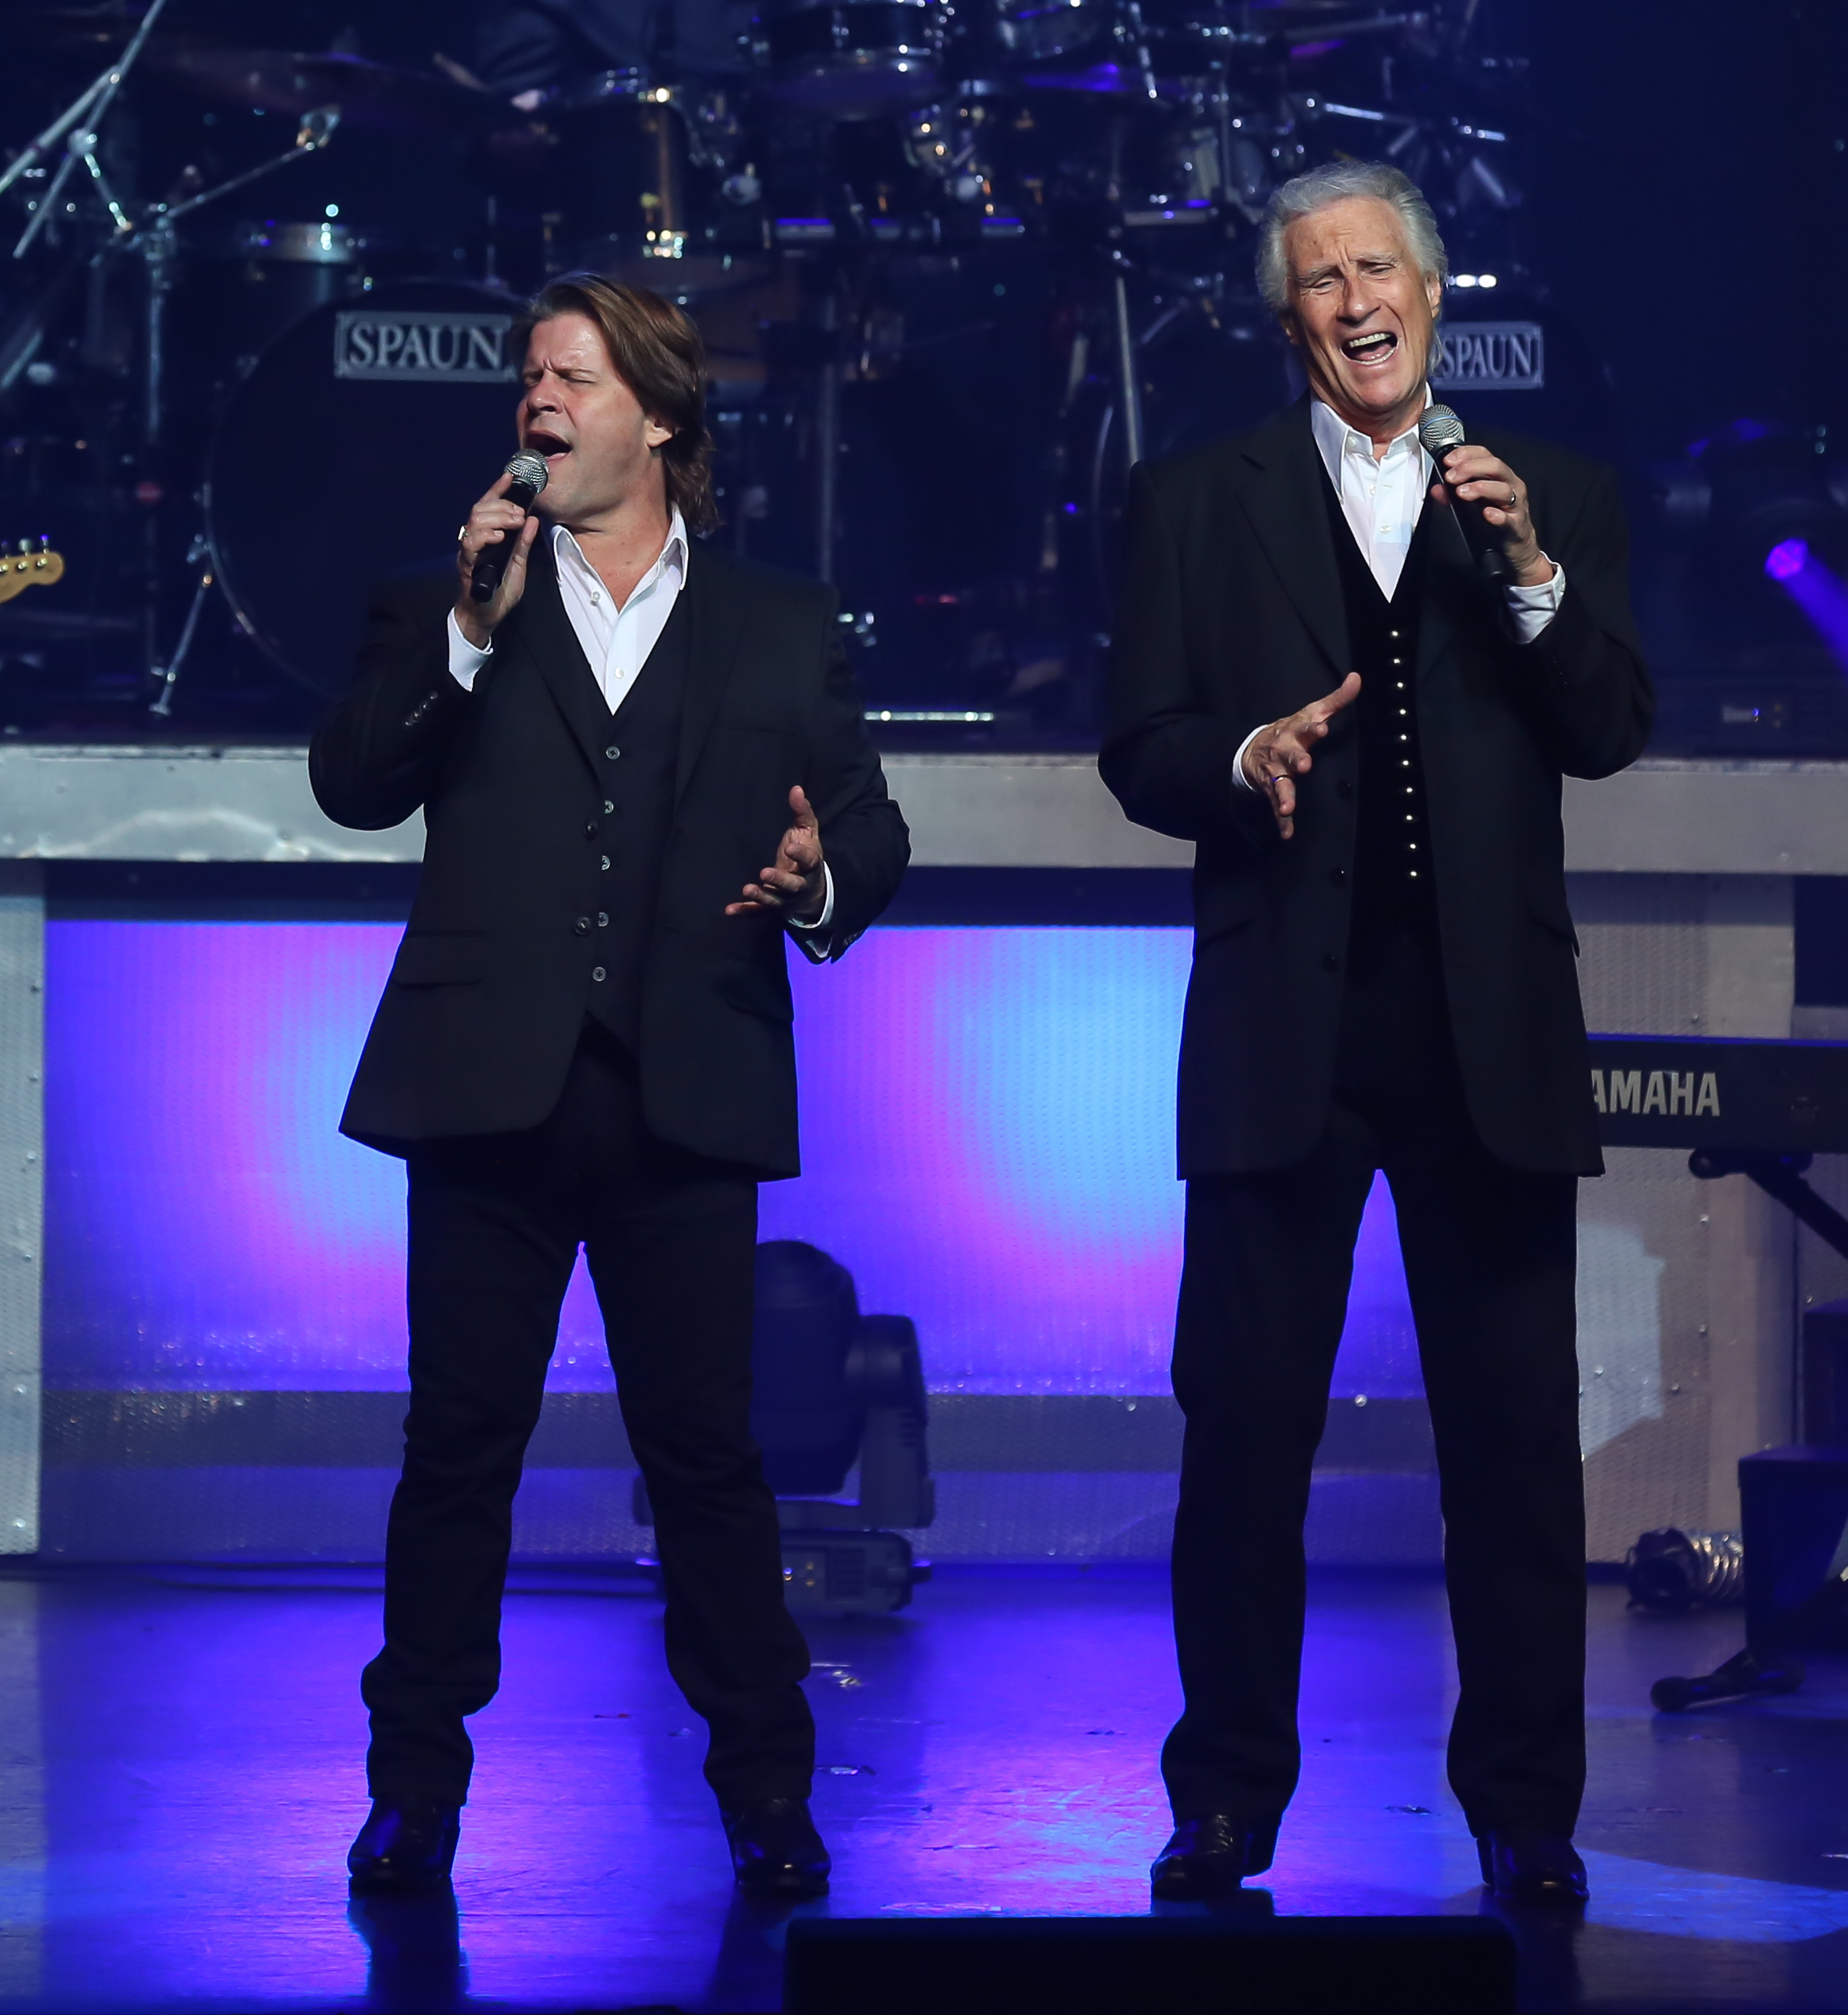 RIGHTEOUS BROTHERS 0N STAGE.jpg